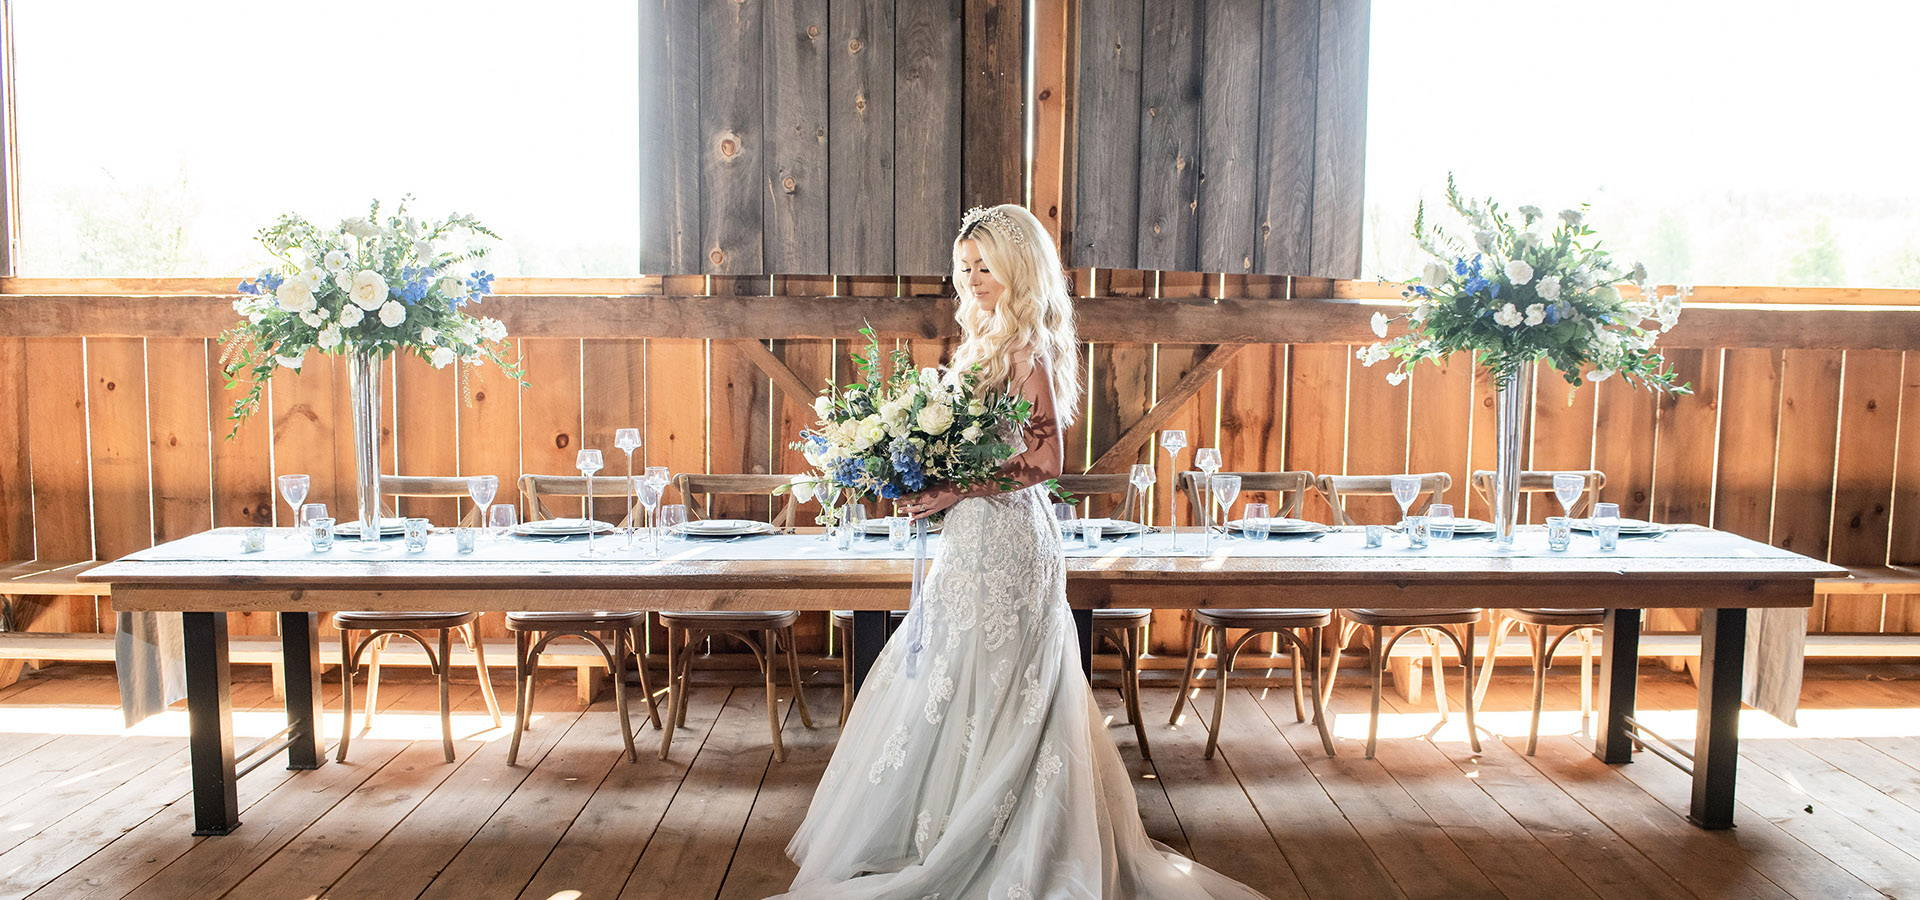 Hero image for Styled Shoot: Country Chic Wedding Inspiration at The Barn 1906